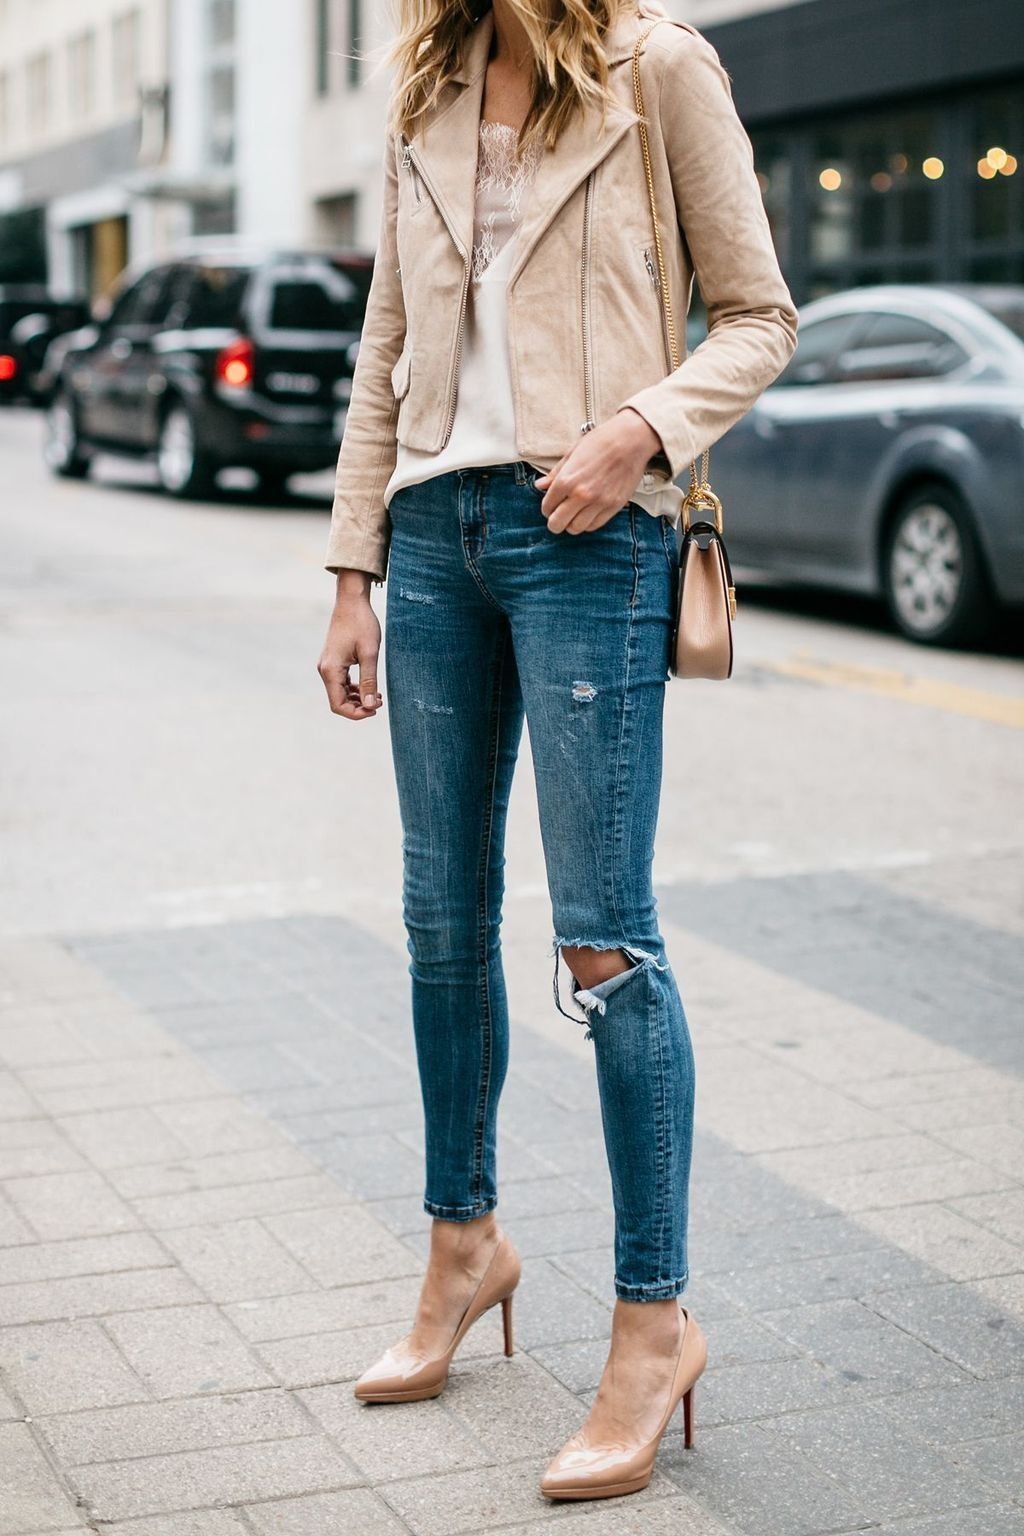 Pin By Kim Comisar On Fashion Beige Leather Jacket Outfit Suede Jacket Outfit Spring Jacket Outfit [ 1536 x 1024 Pixel ]